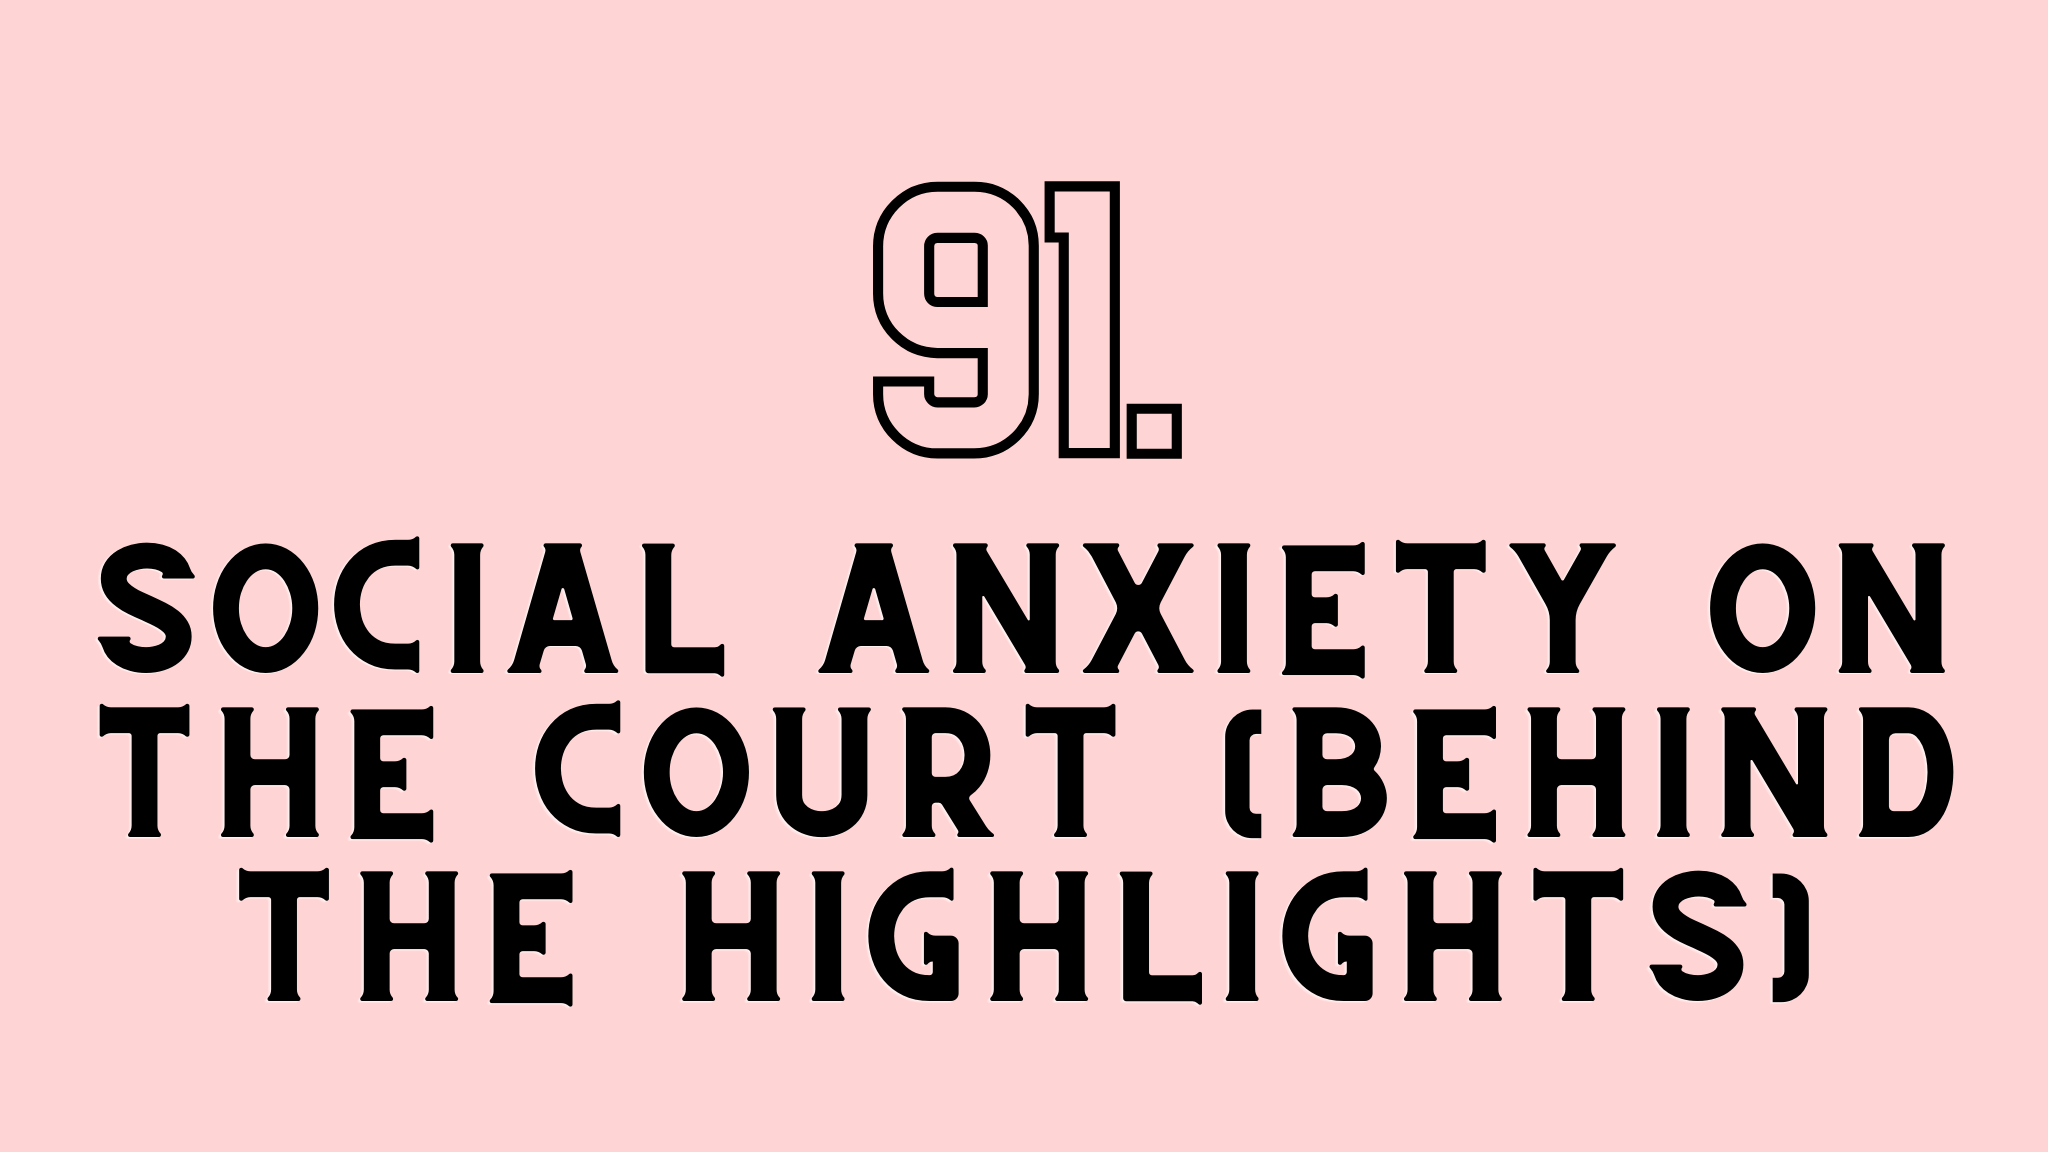 social anxiety on the court